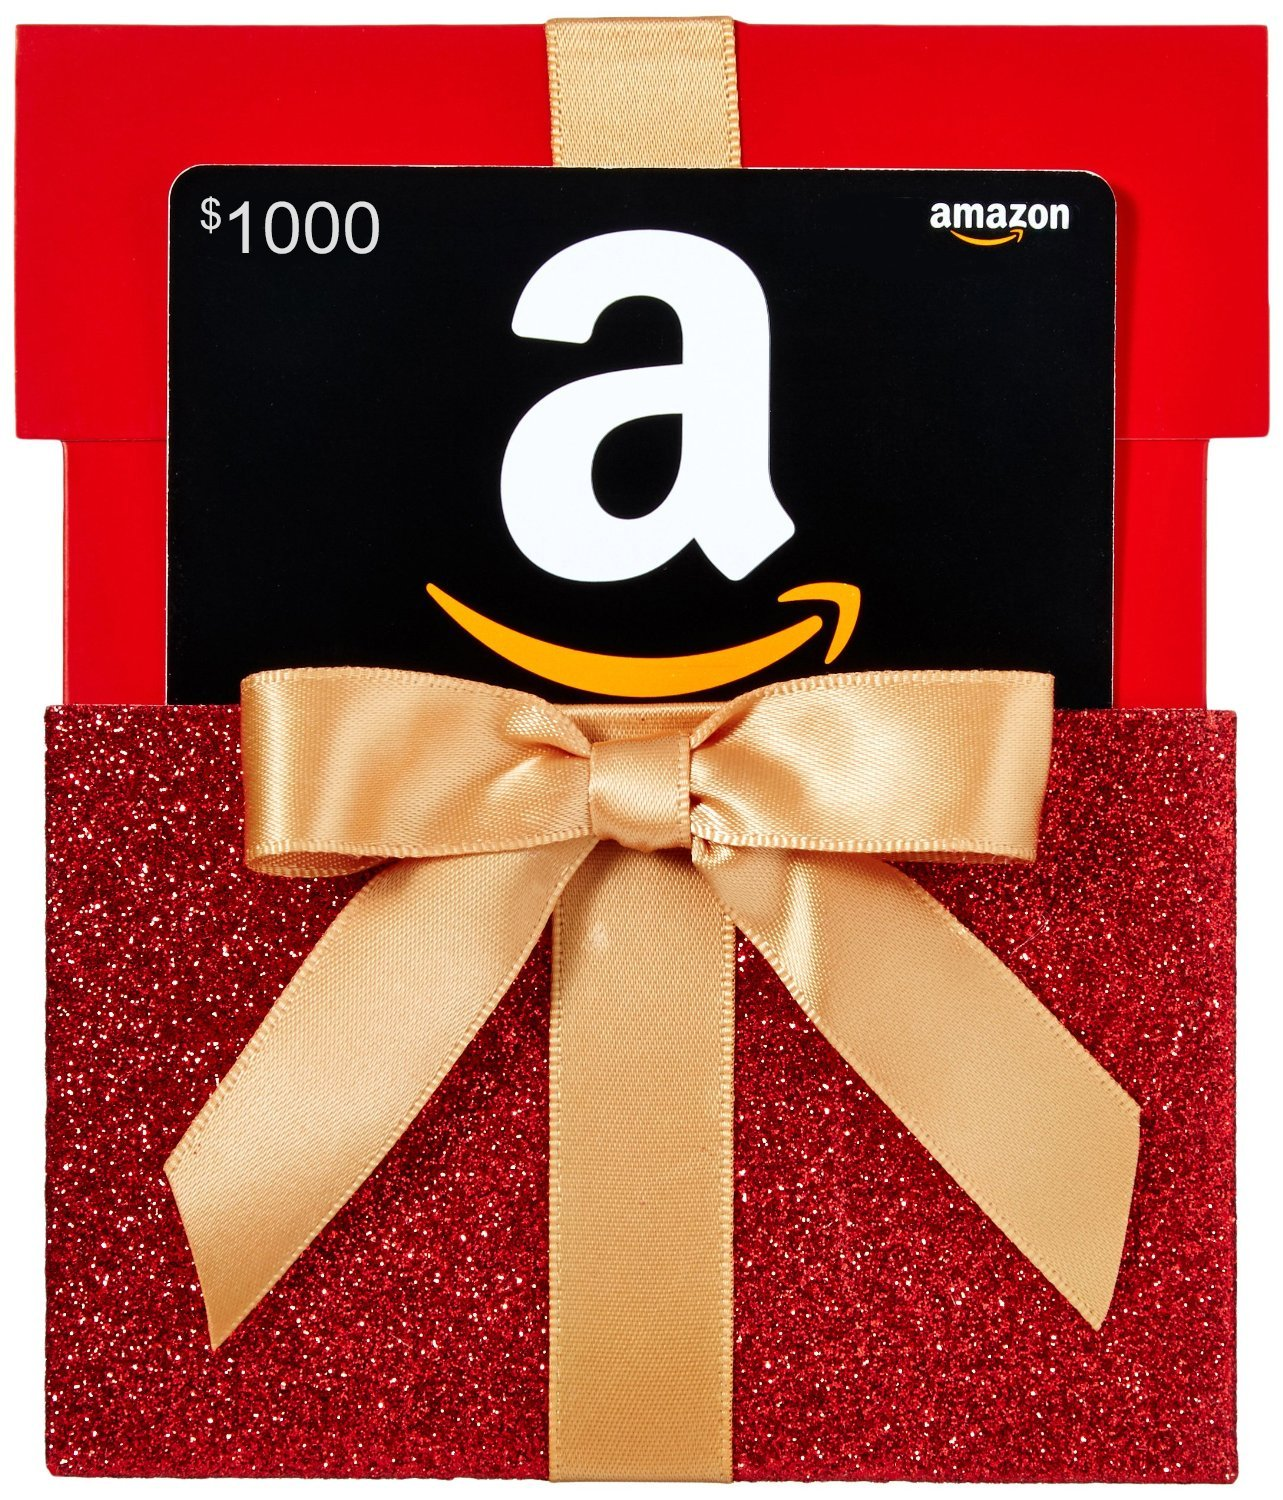 Amazon.ca Gift Card in a Red Reveal (Classic Black Card Design) Amazon.com.ca Inc.